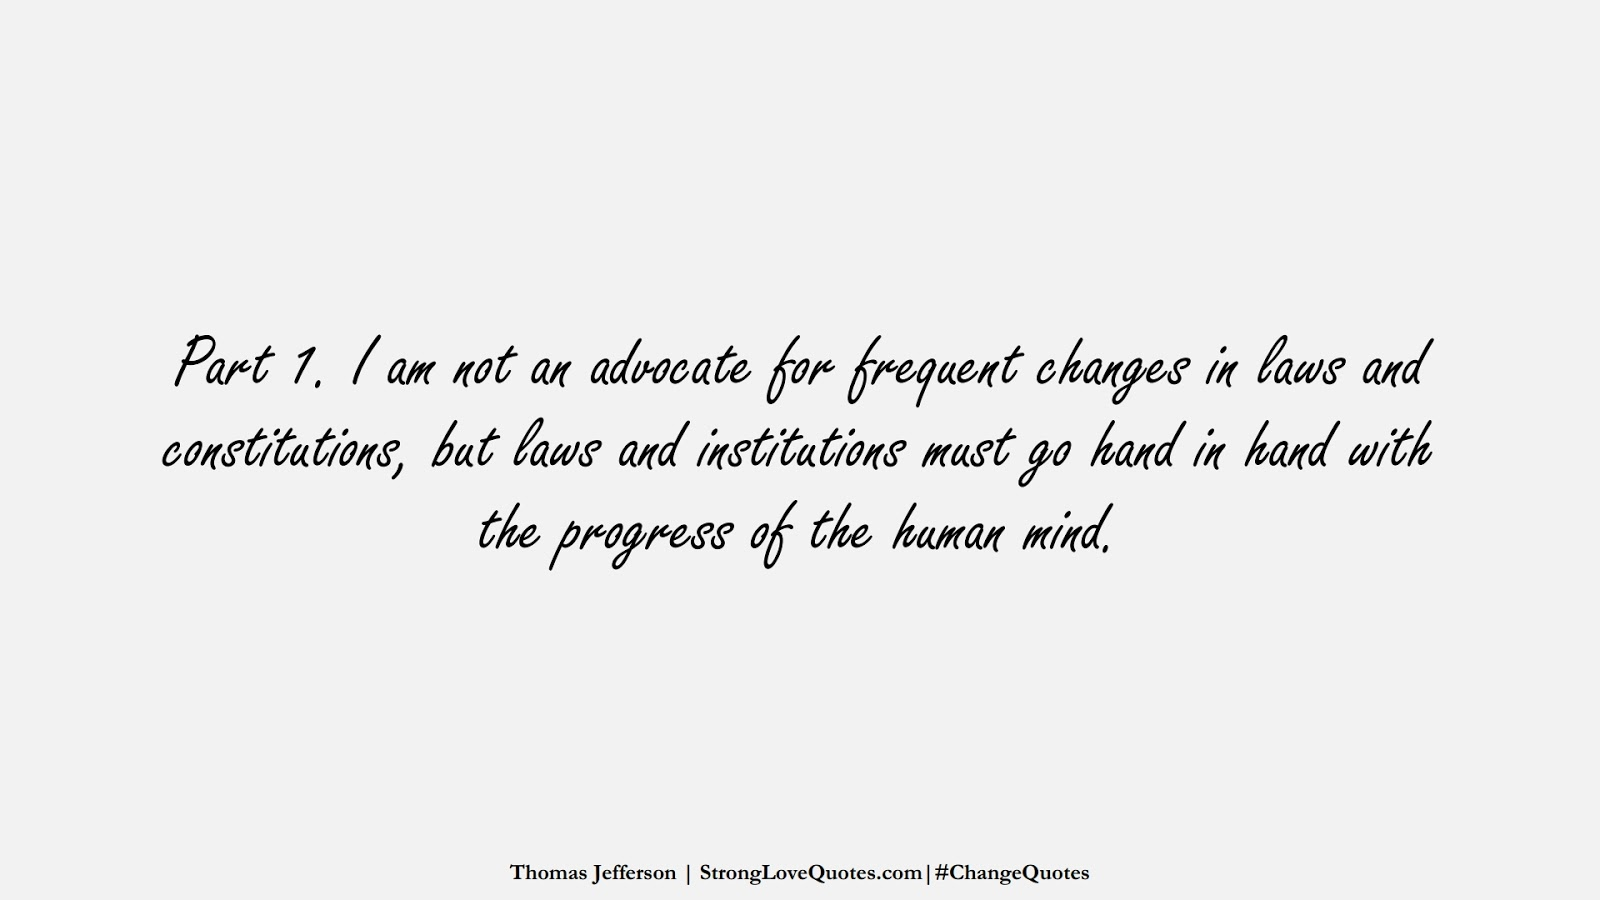 Part 1. I am not an advocate for frequent changes in laws and constitutions, but laws and institutions must go hand in hand with the progress of the human mind. (Thomas Jefferson);  #ChangeQuotes